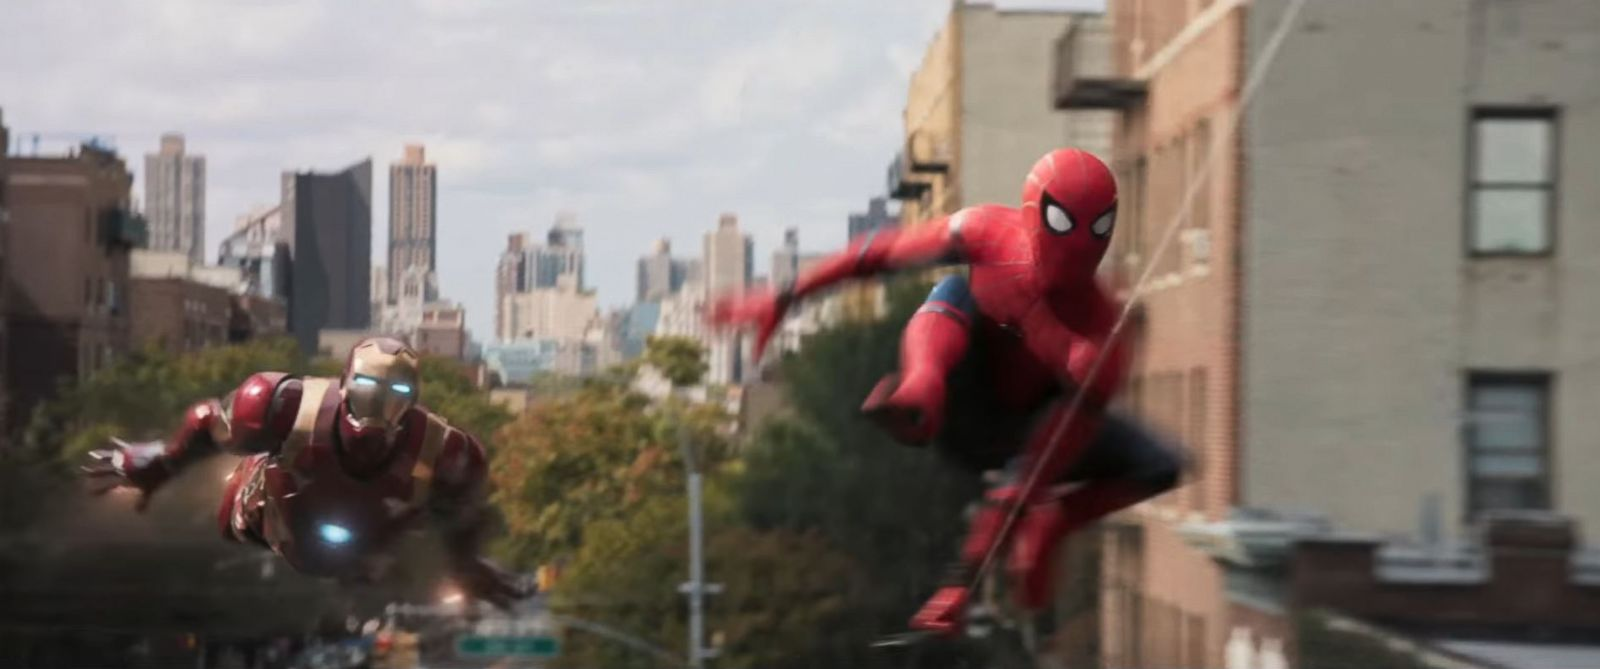 Spider-Man Homecoming trailer Iron Man